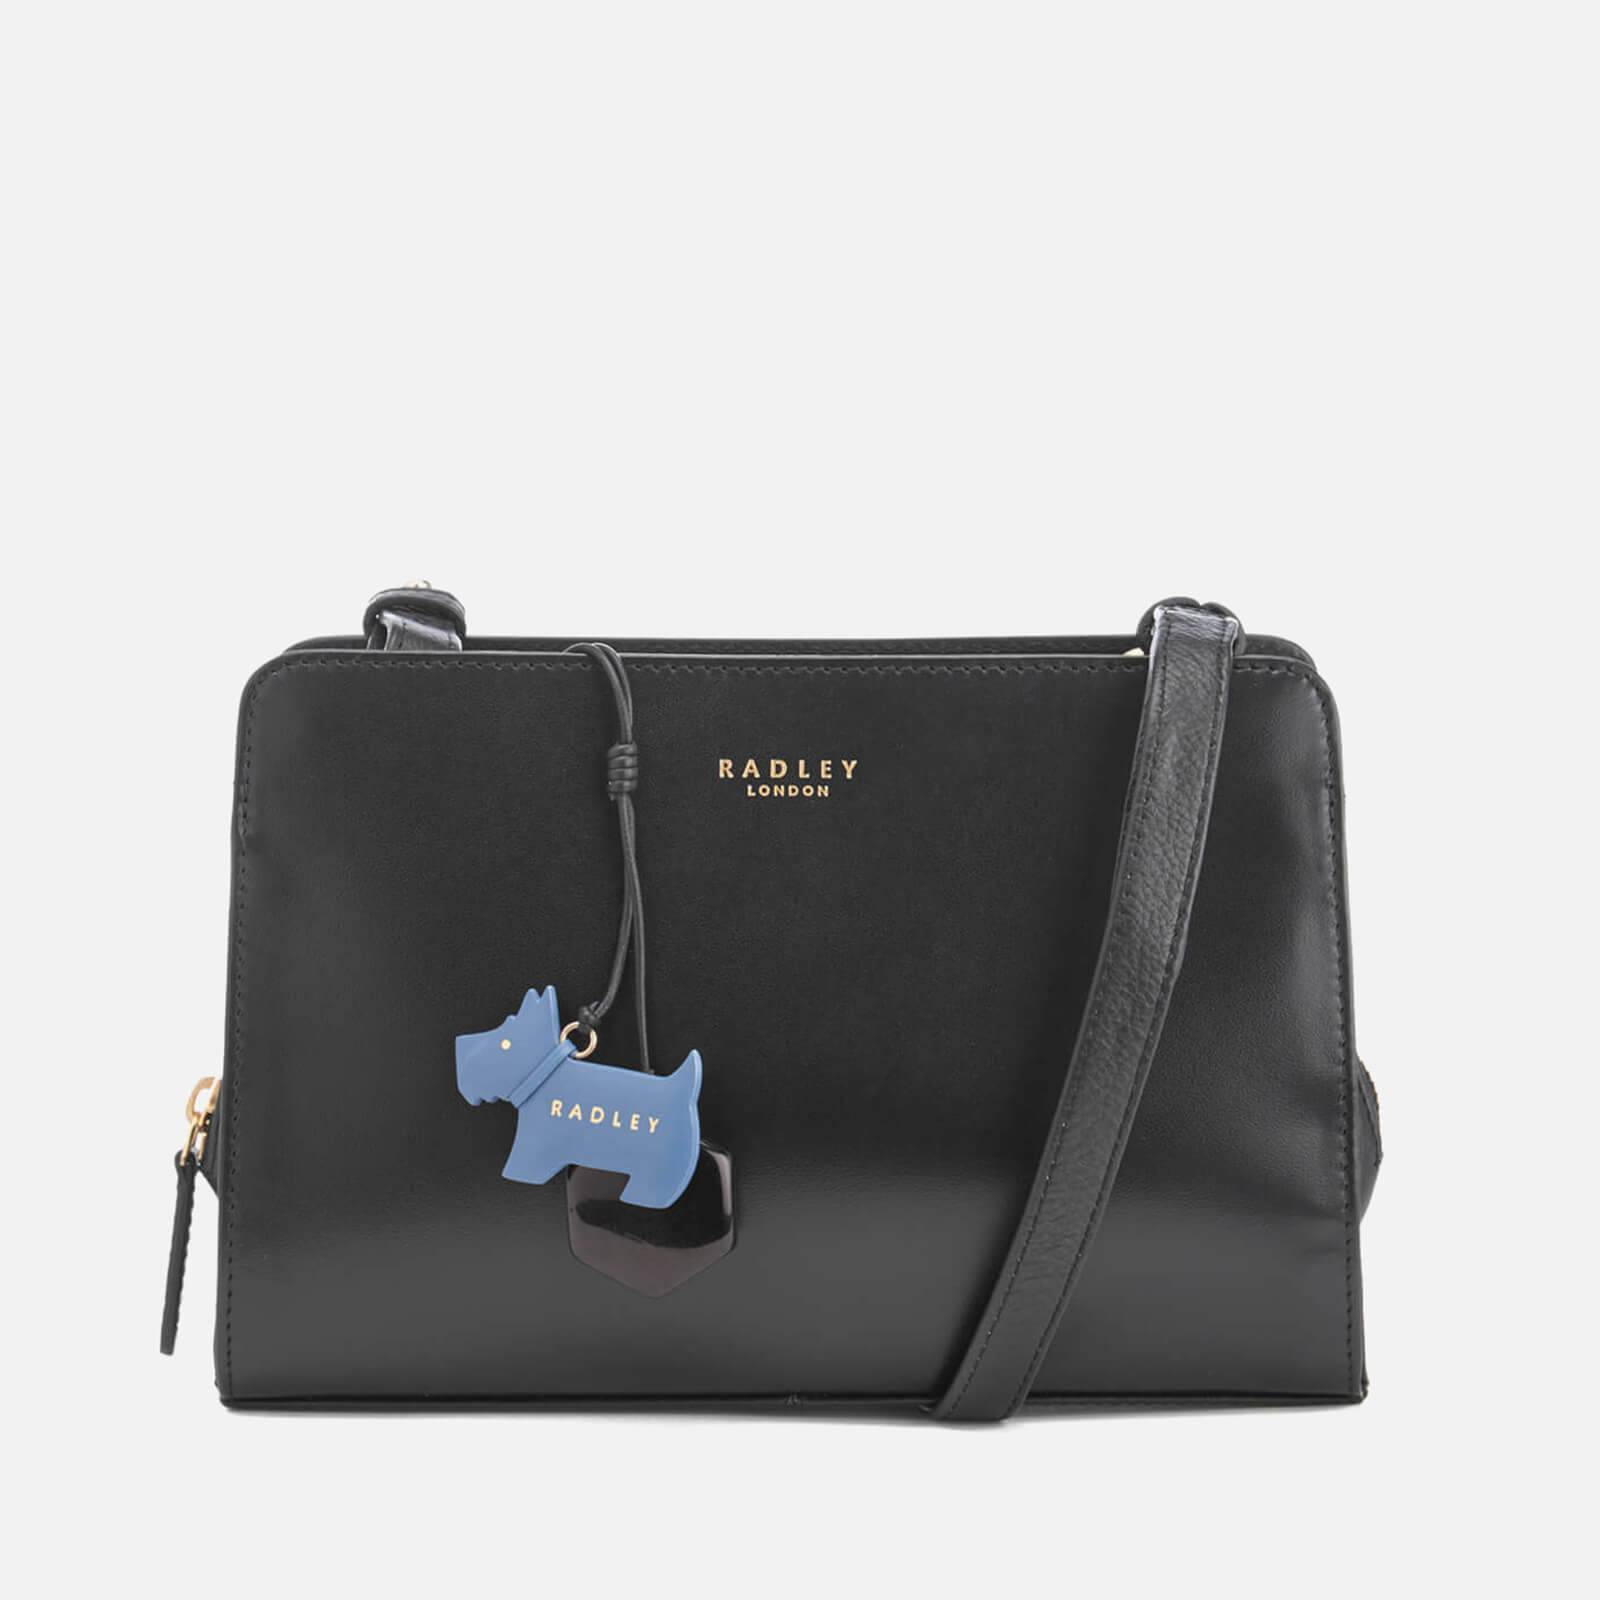 Radley Women's Liverpool Street Medium Zip Top Cross Body Bag - Black